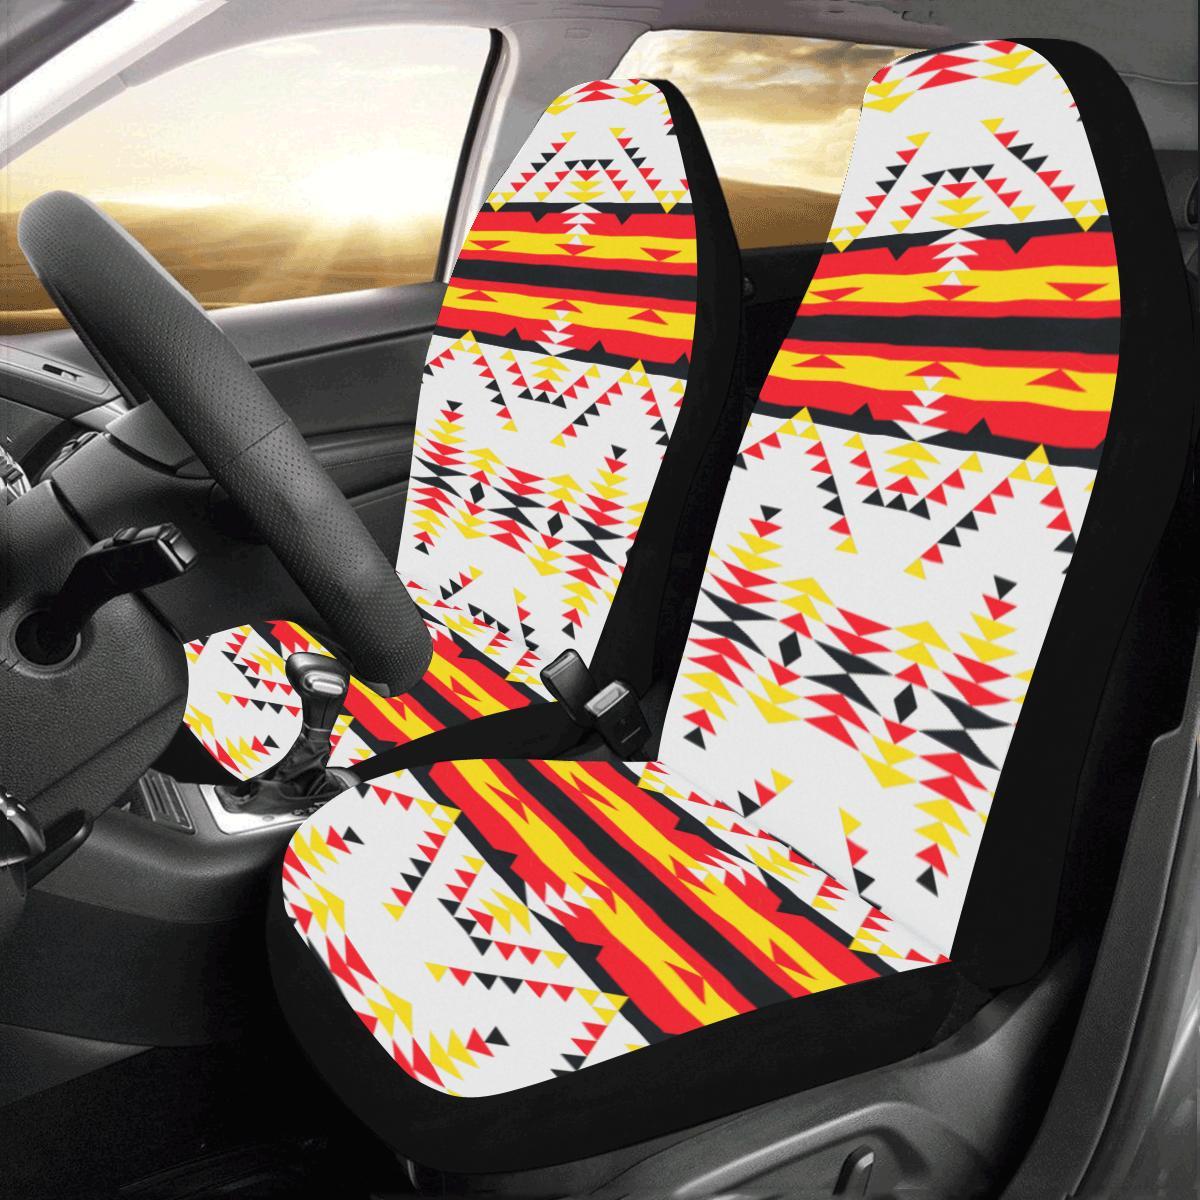 Visions of Peace Directions Car Seat Covers (Set of 2) Car Seat Covers e-joyer